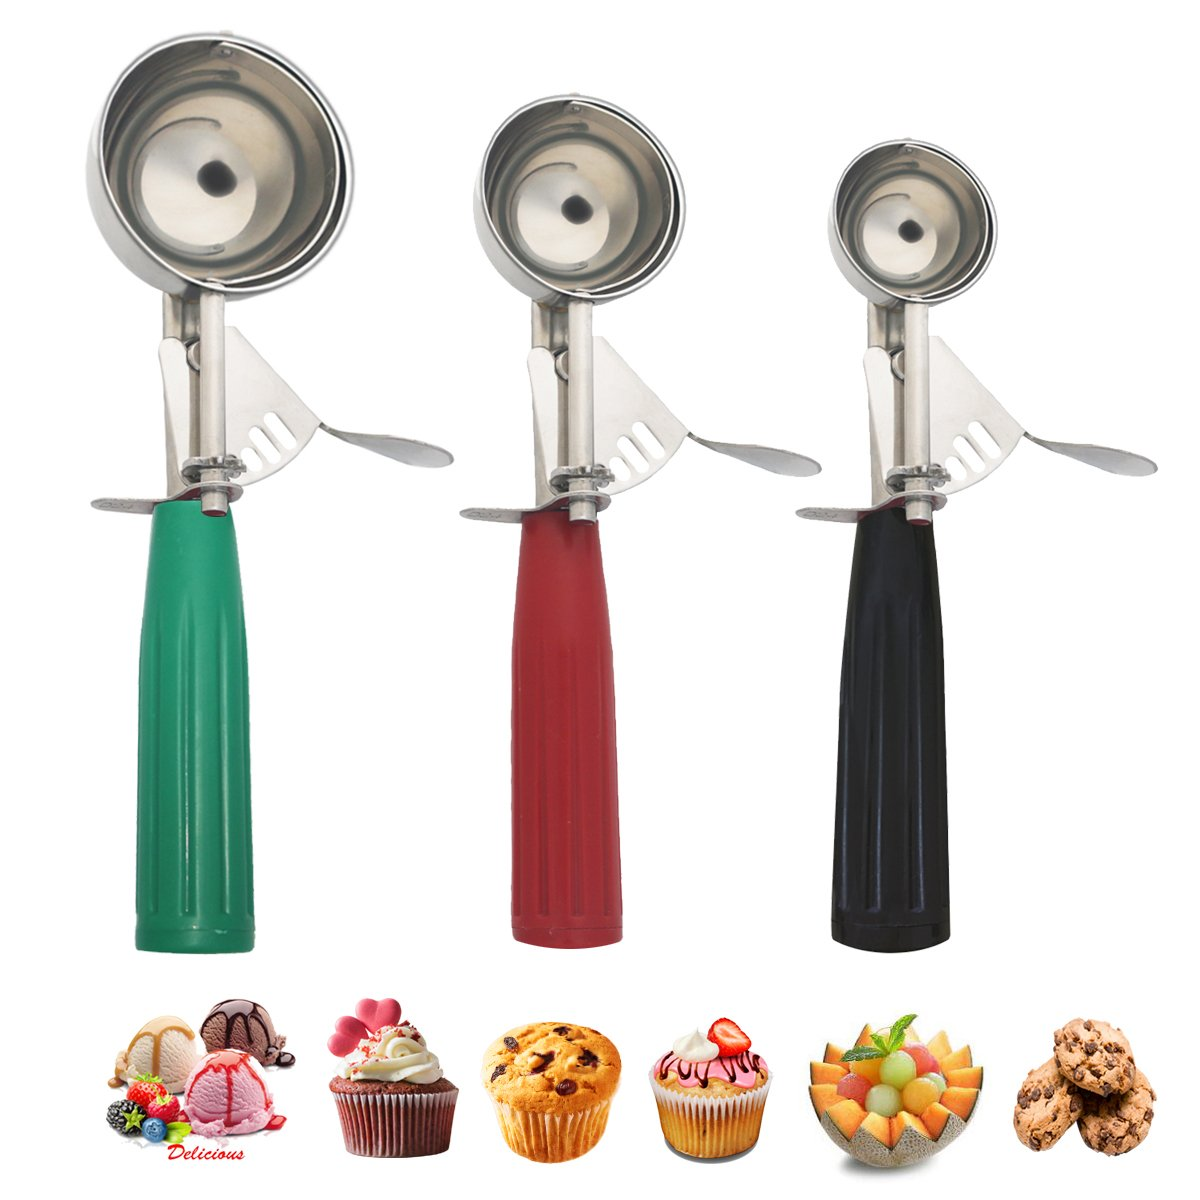 Cookie Scoop Set, Ice Cream Scoop with Trigger, Multiple Size Large-Medium-Small Size Professional 18/8 Stainless Steel Cupcake Scoop by Saebye (Image #1)